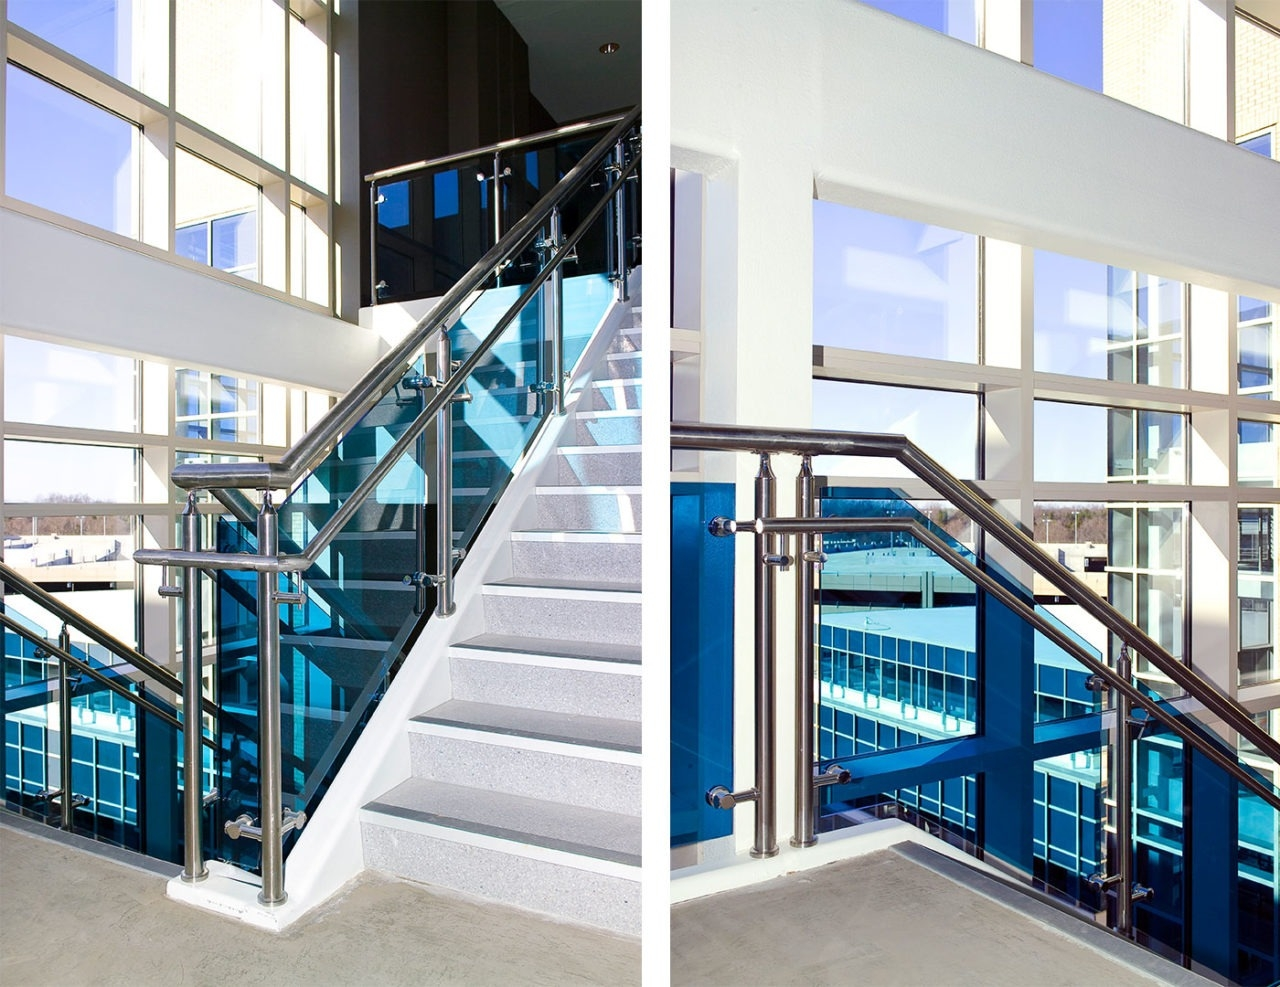 Lowe S Corporate Trex Commercial Products Inc | Lowes Metal Stair Railing | Lowes Com | Aluminum Railing | Composite Deck Stair | Handrail Kit | Wood